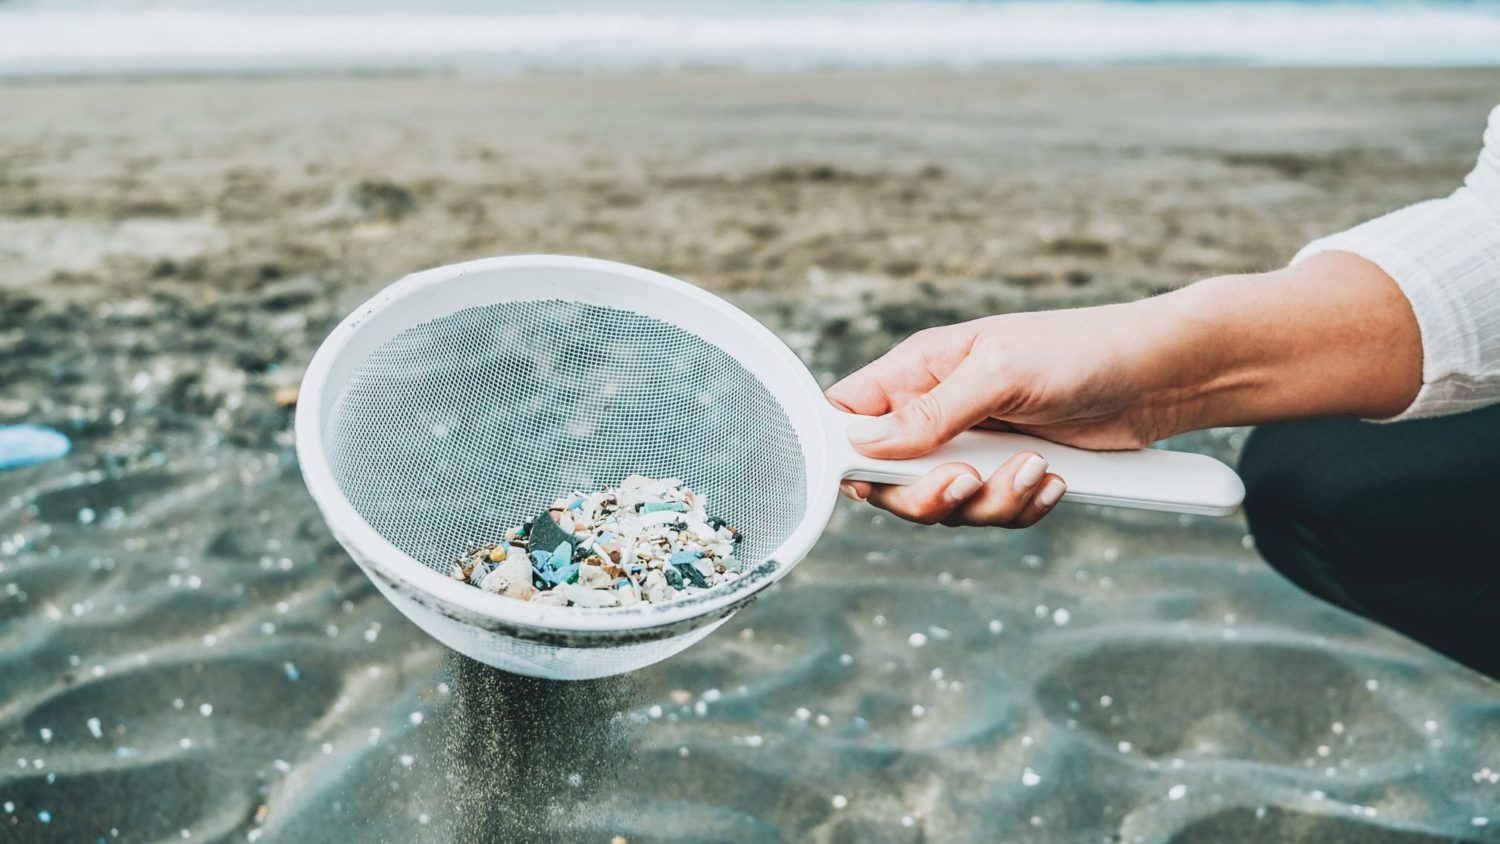 What Are Microplastics and How Did They Get Into Our Food?